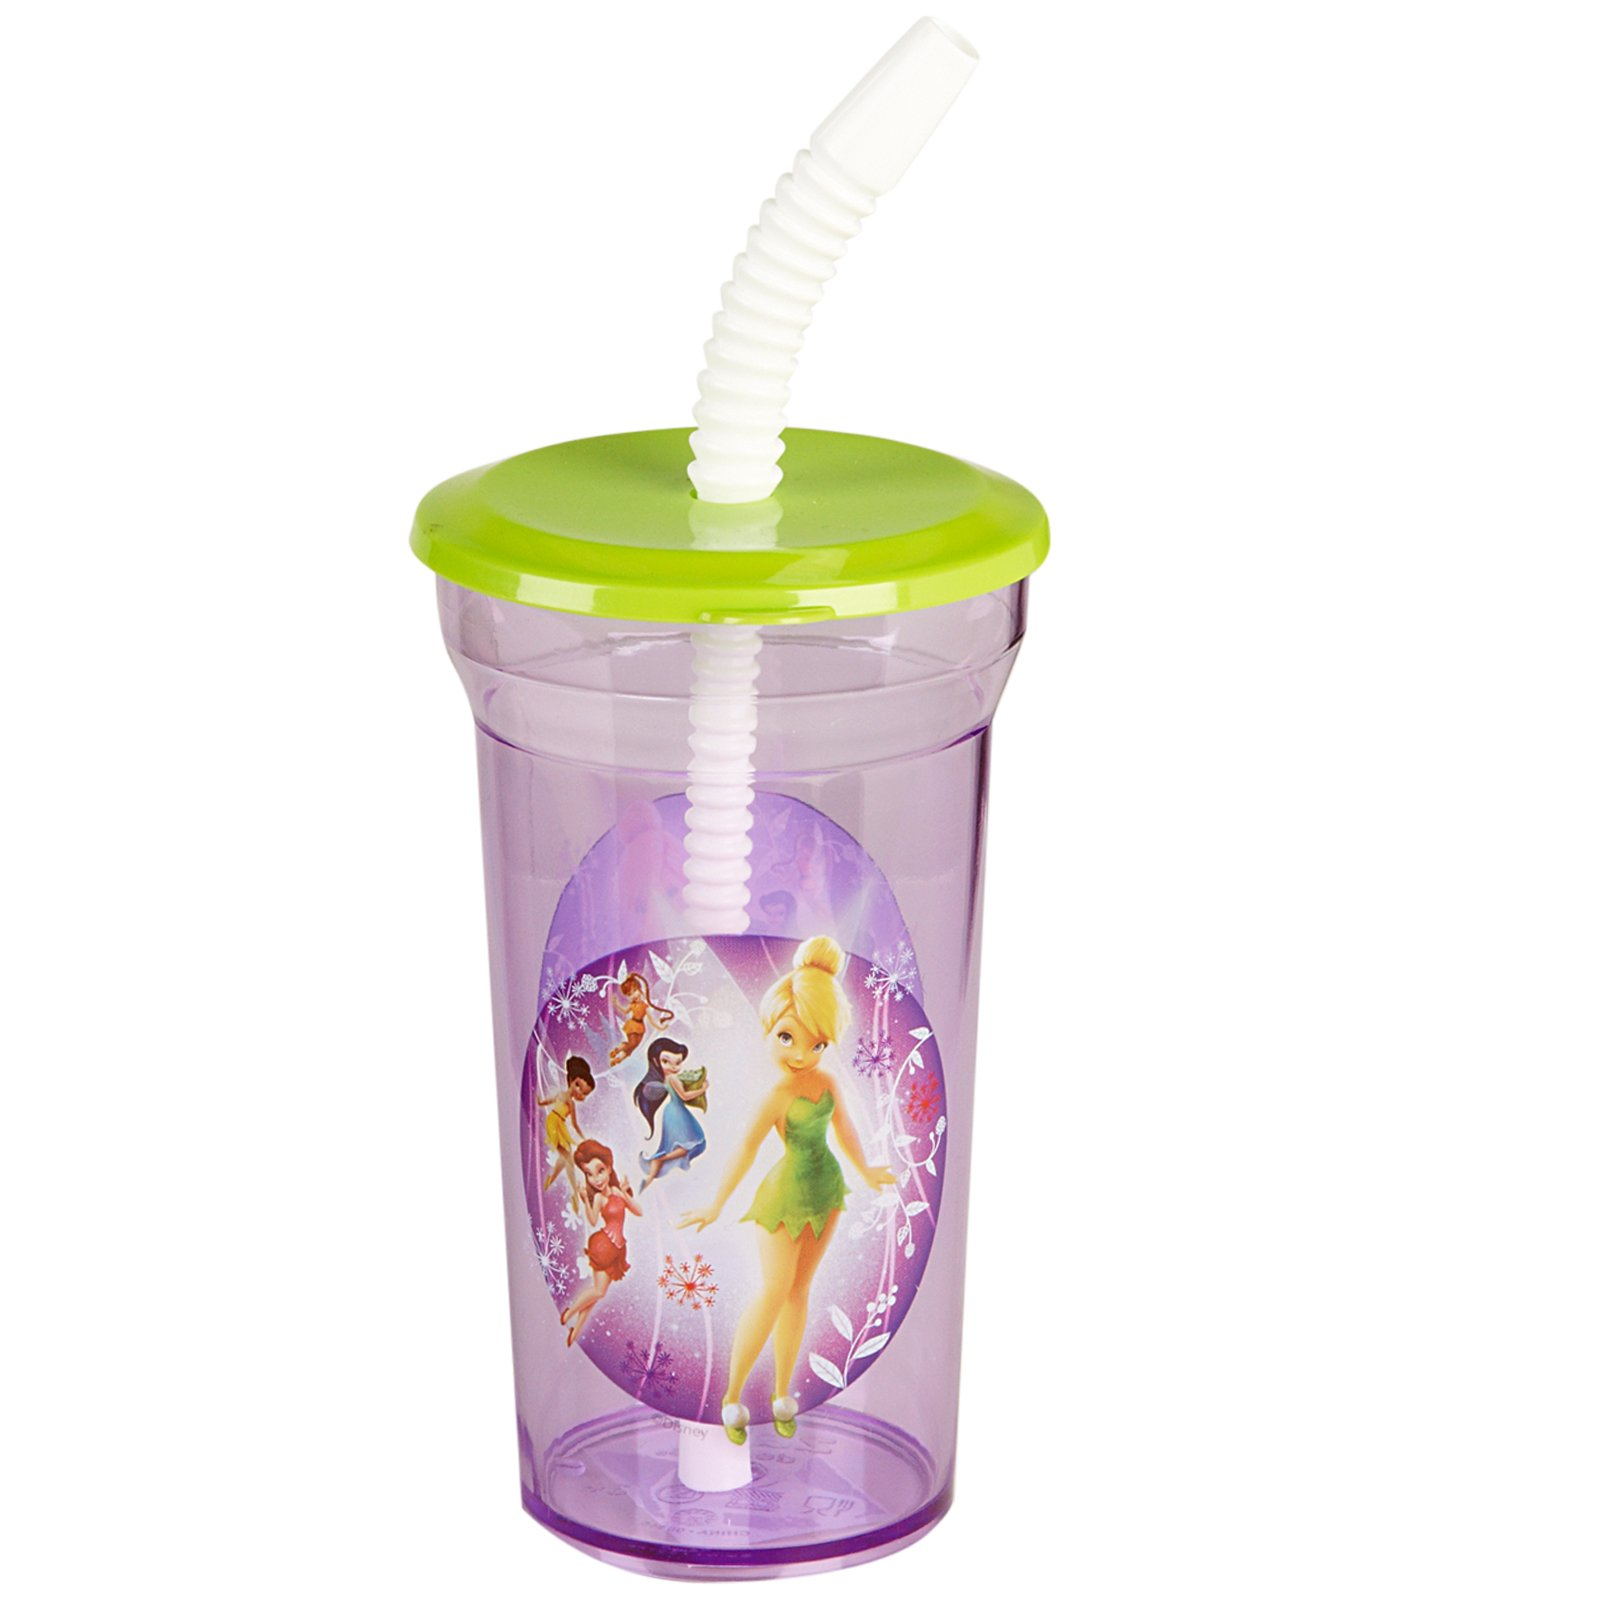 Tinker Bell Tumbler (1 count)